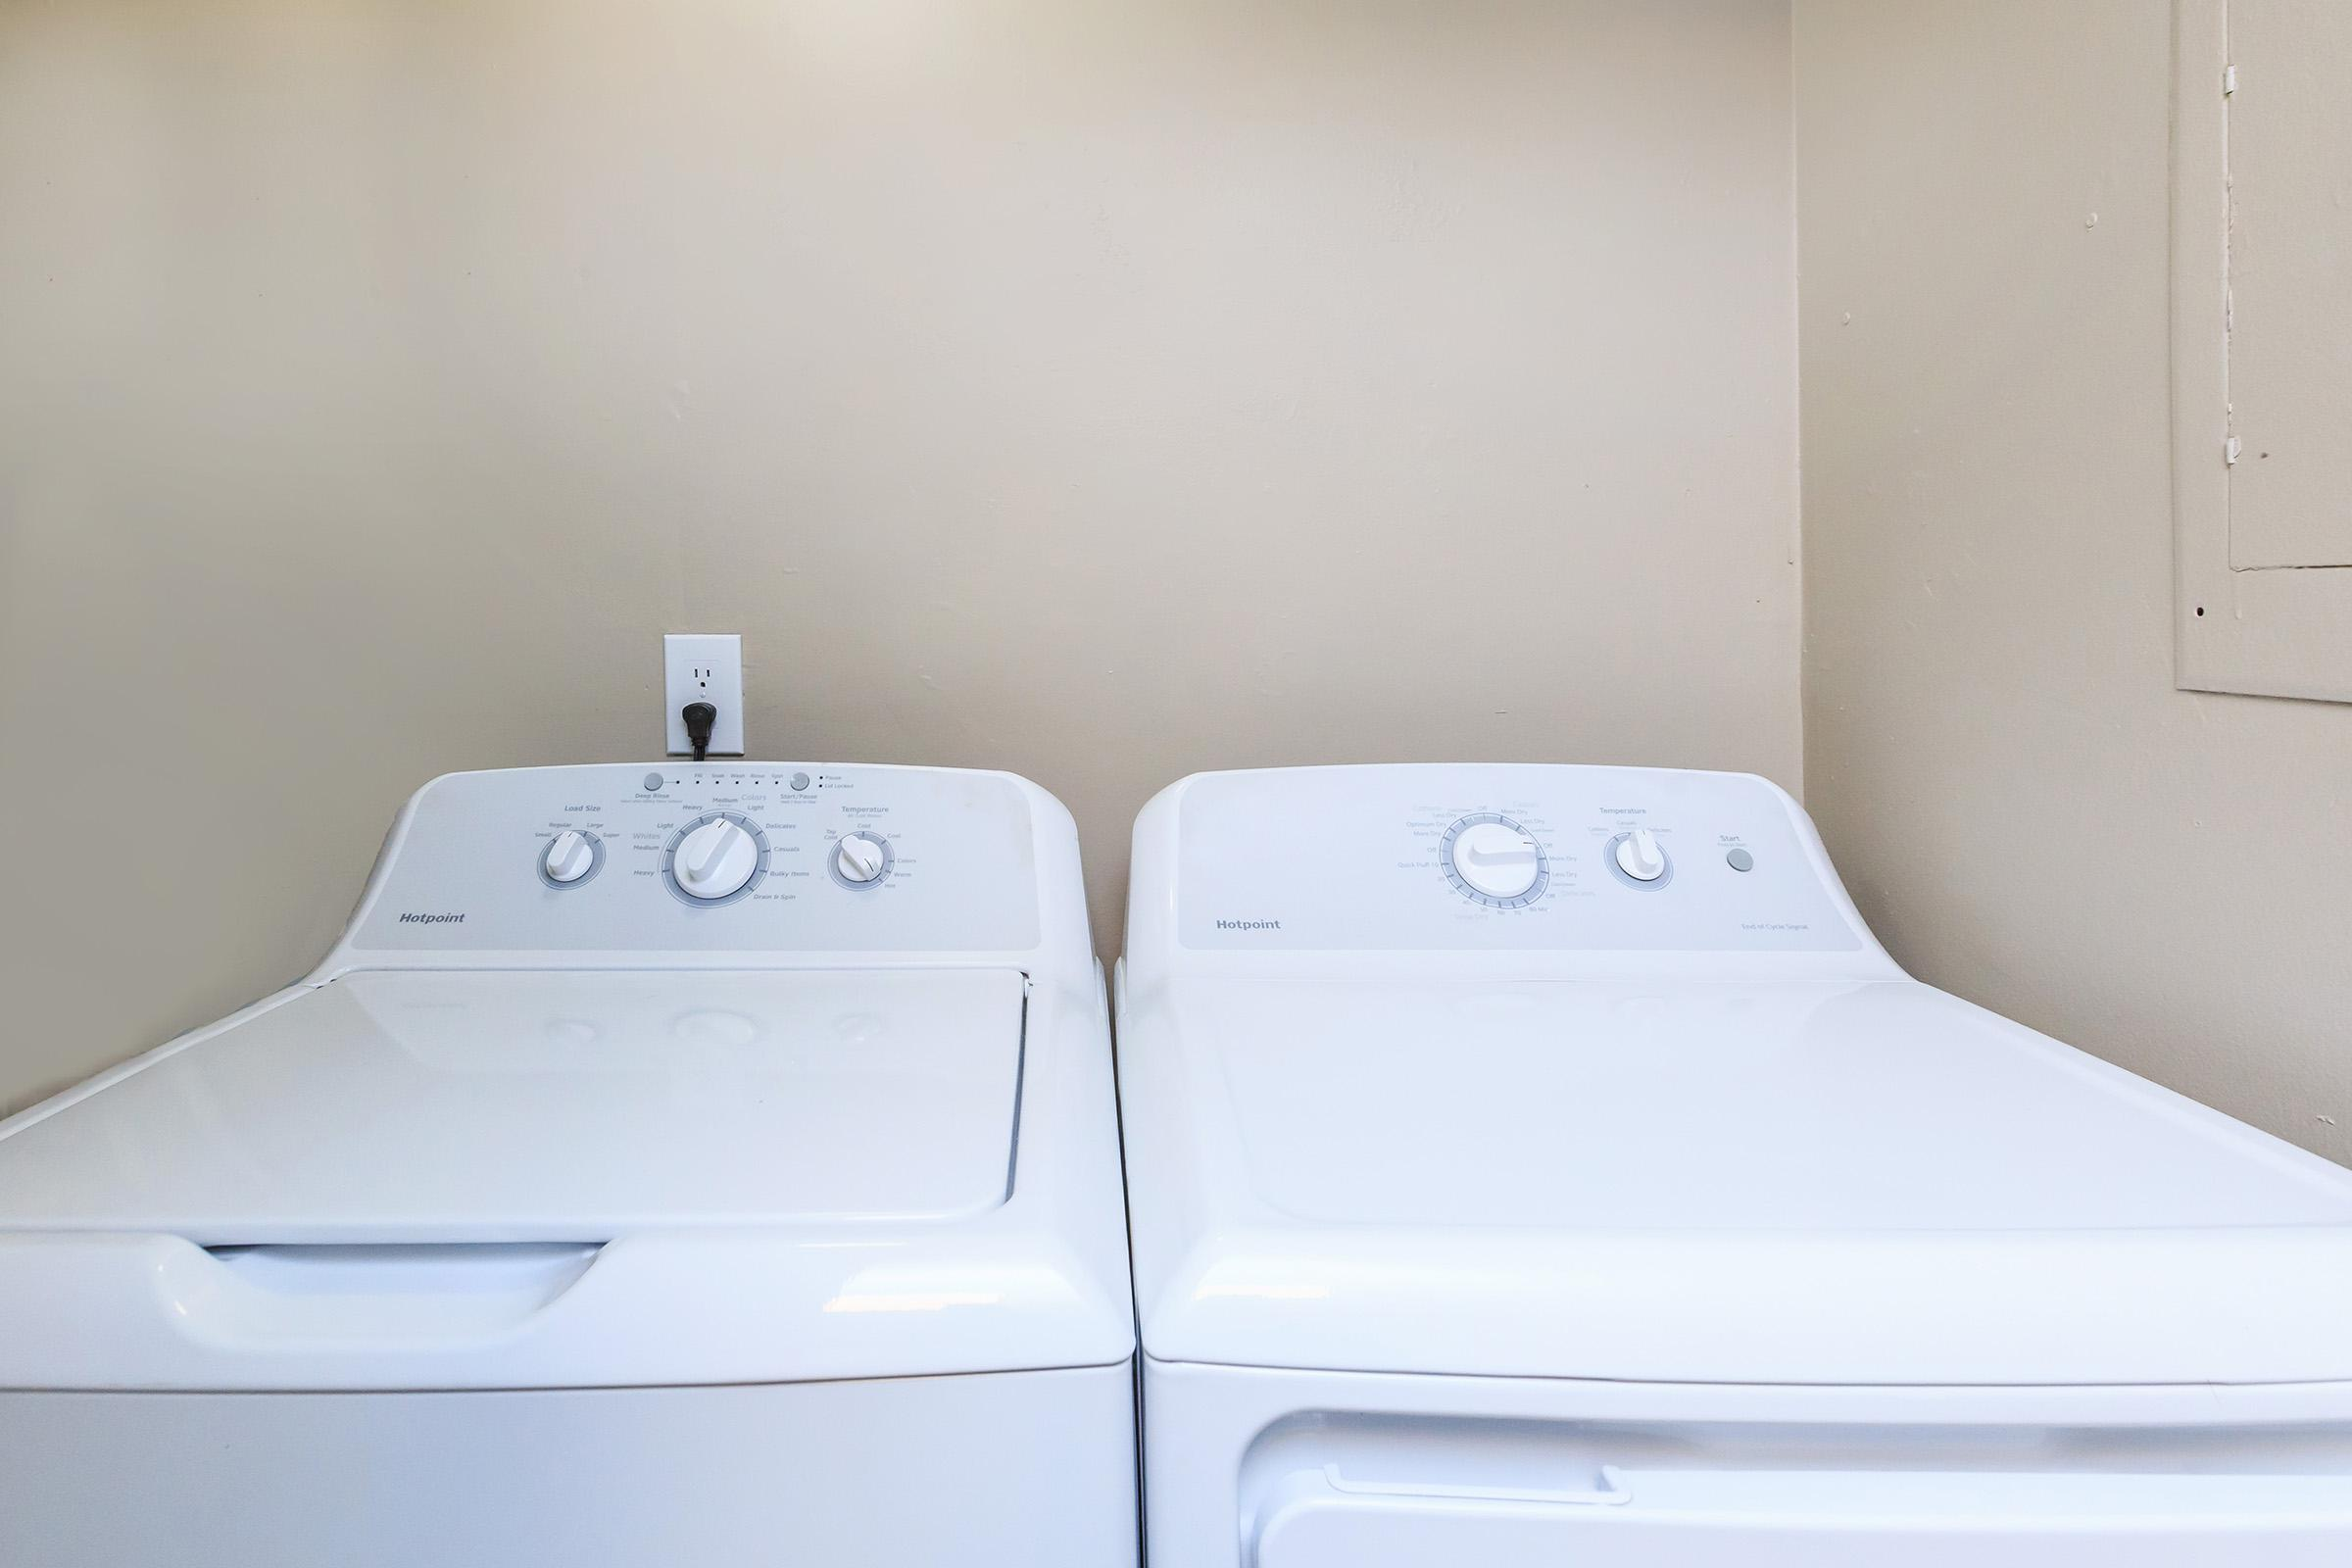 In-home washer and dryer at Colony House